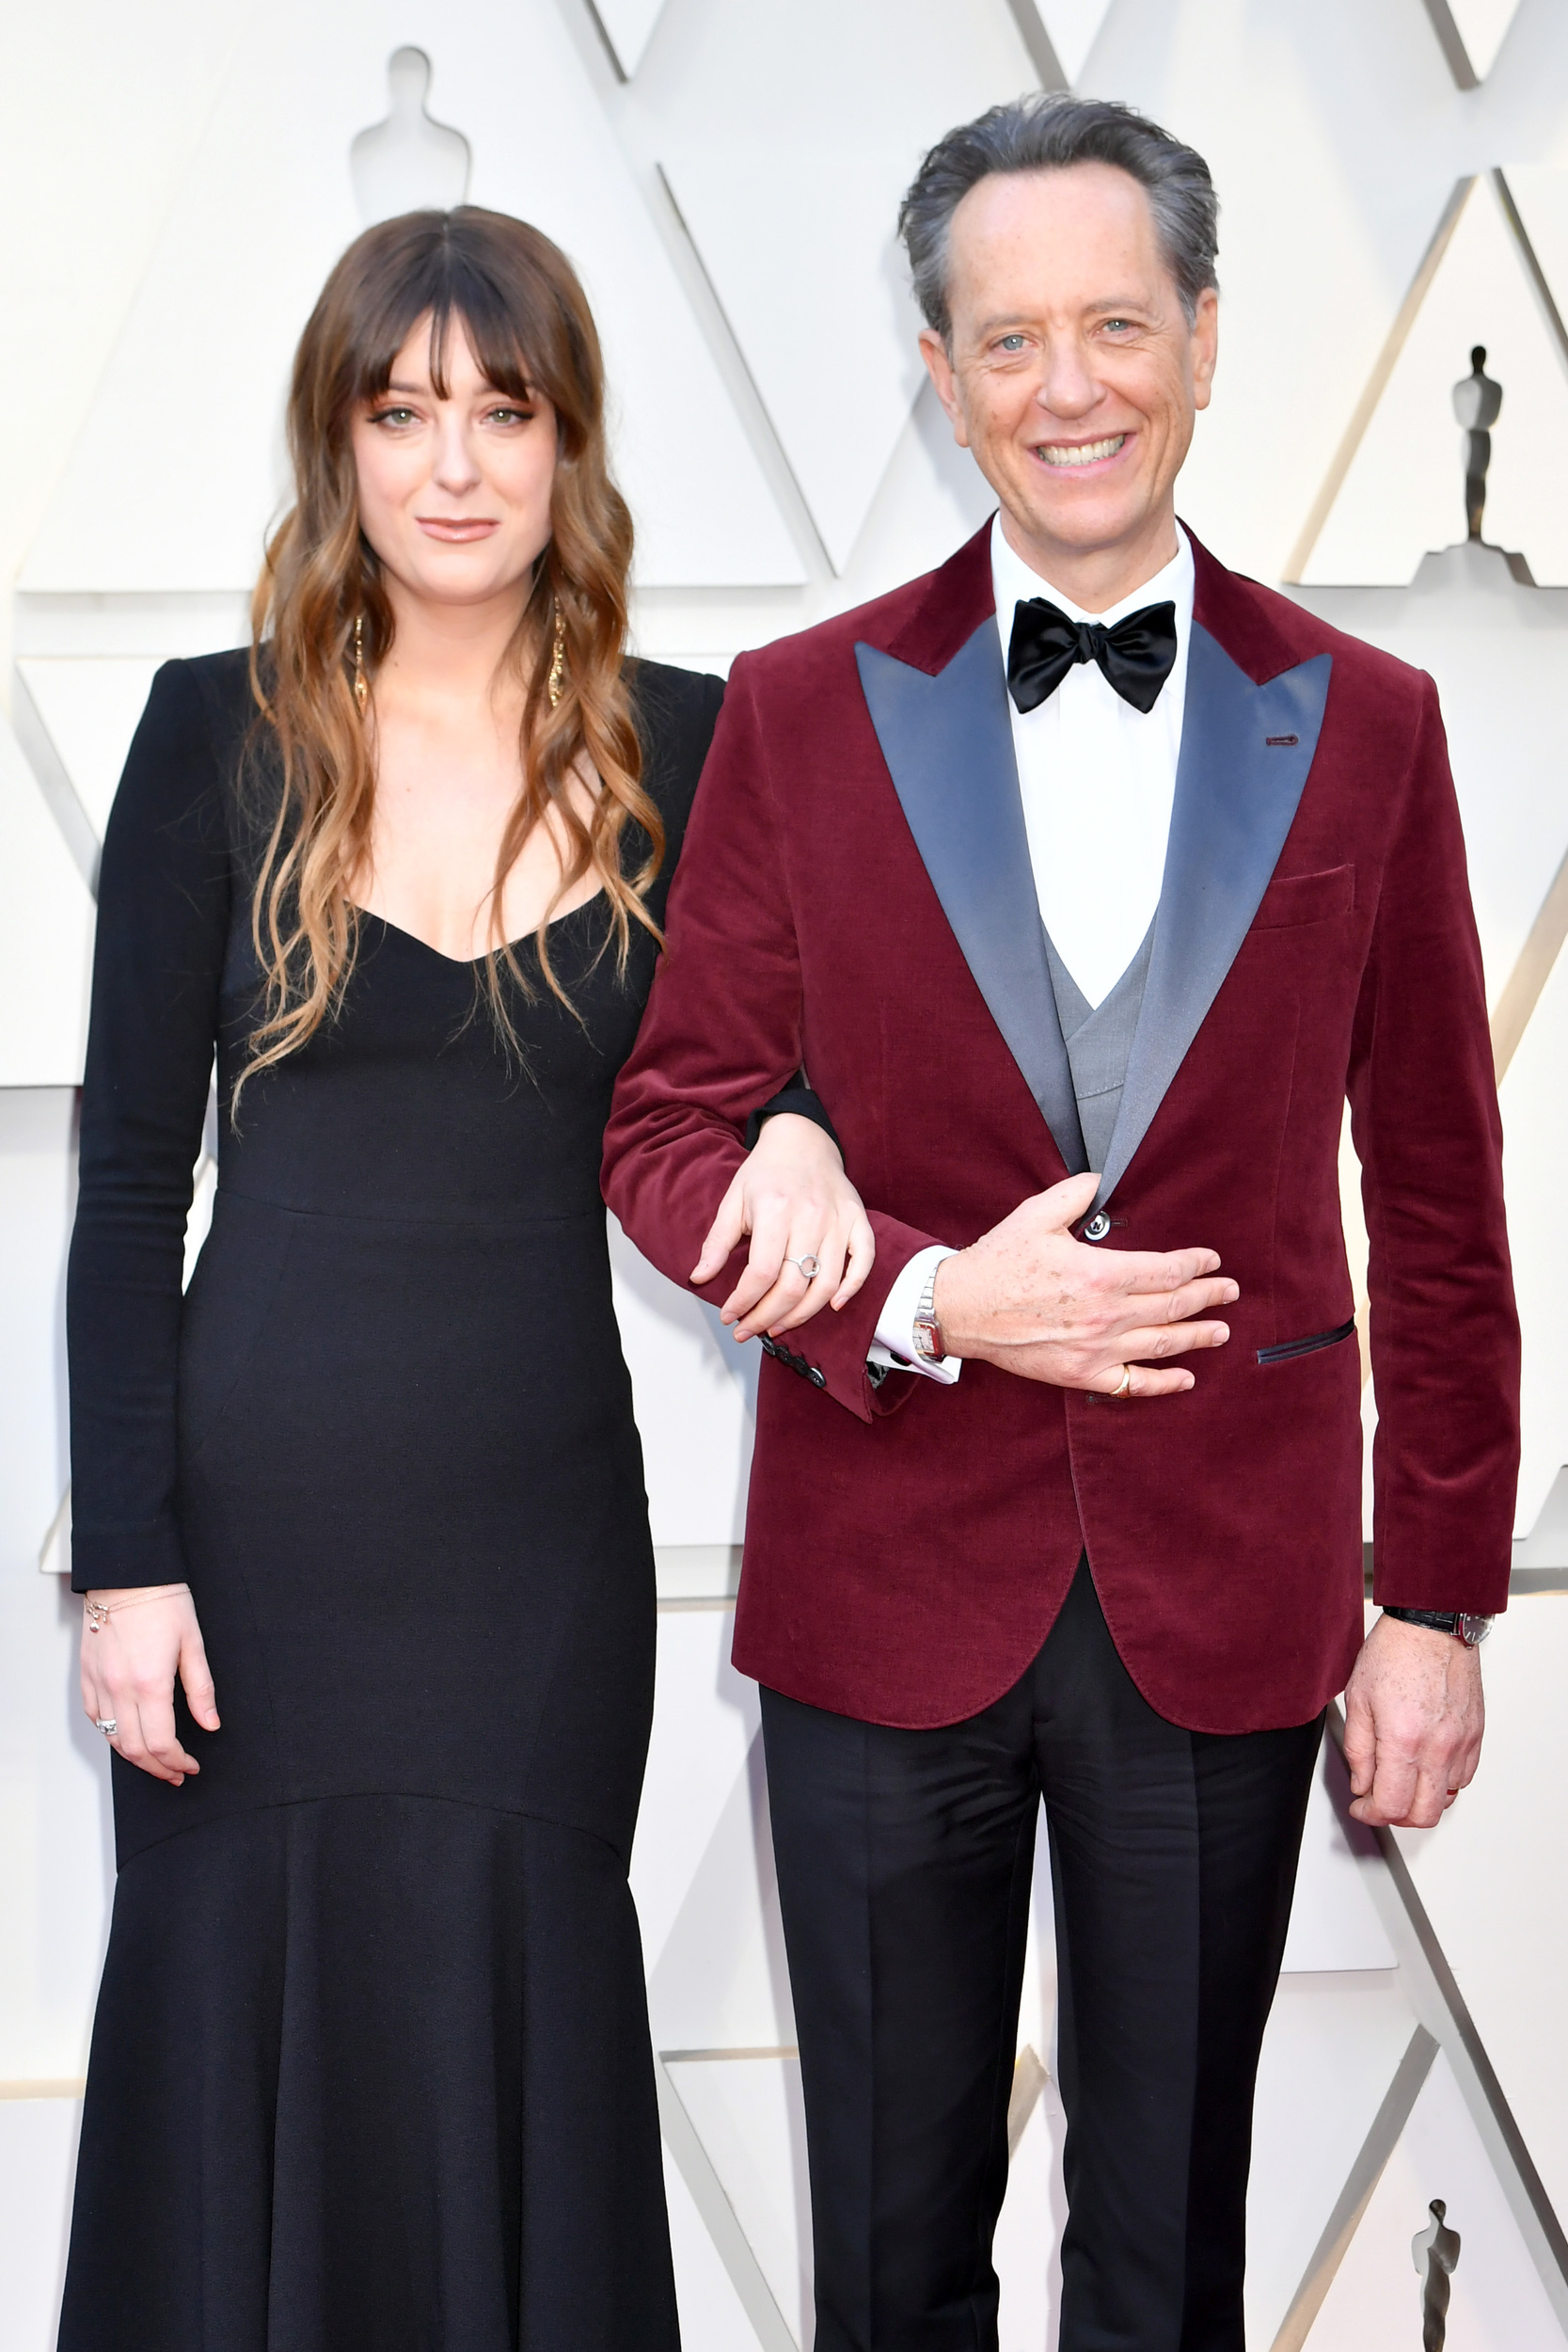 Character actor Richard E. Grant (here with his daughter Olivia Grant) is nominated for the first time tonight. He s been positively delightful during the whole awards season, and this jacket is no exception.